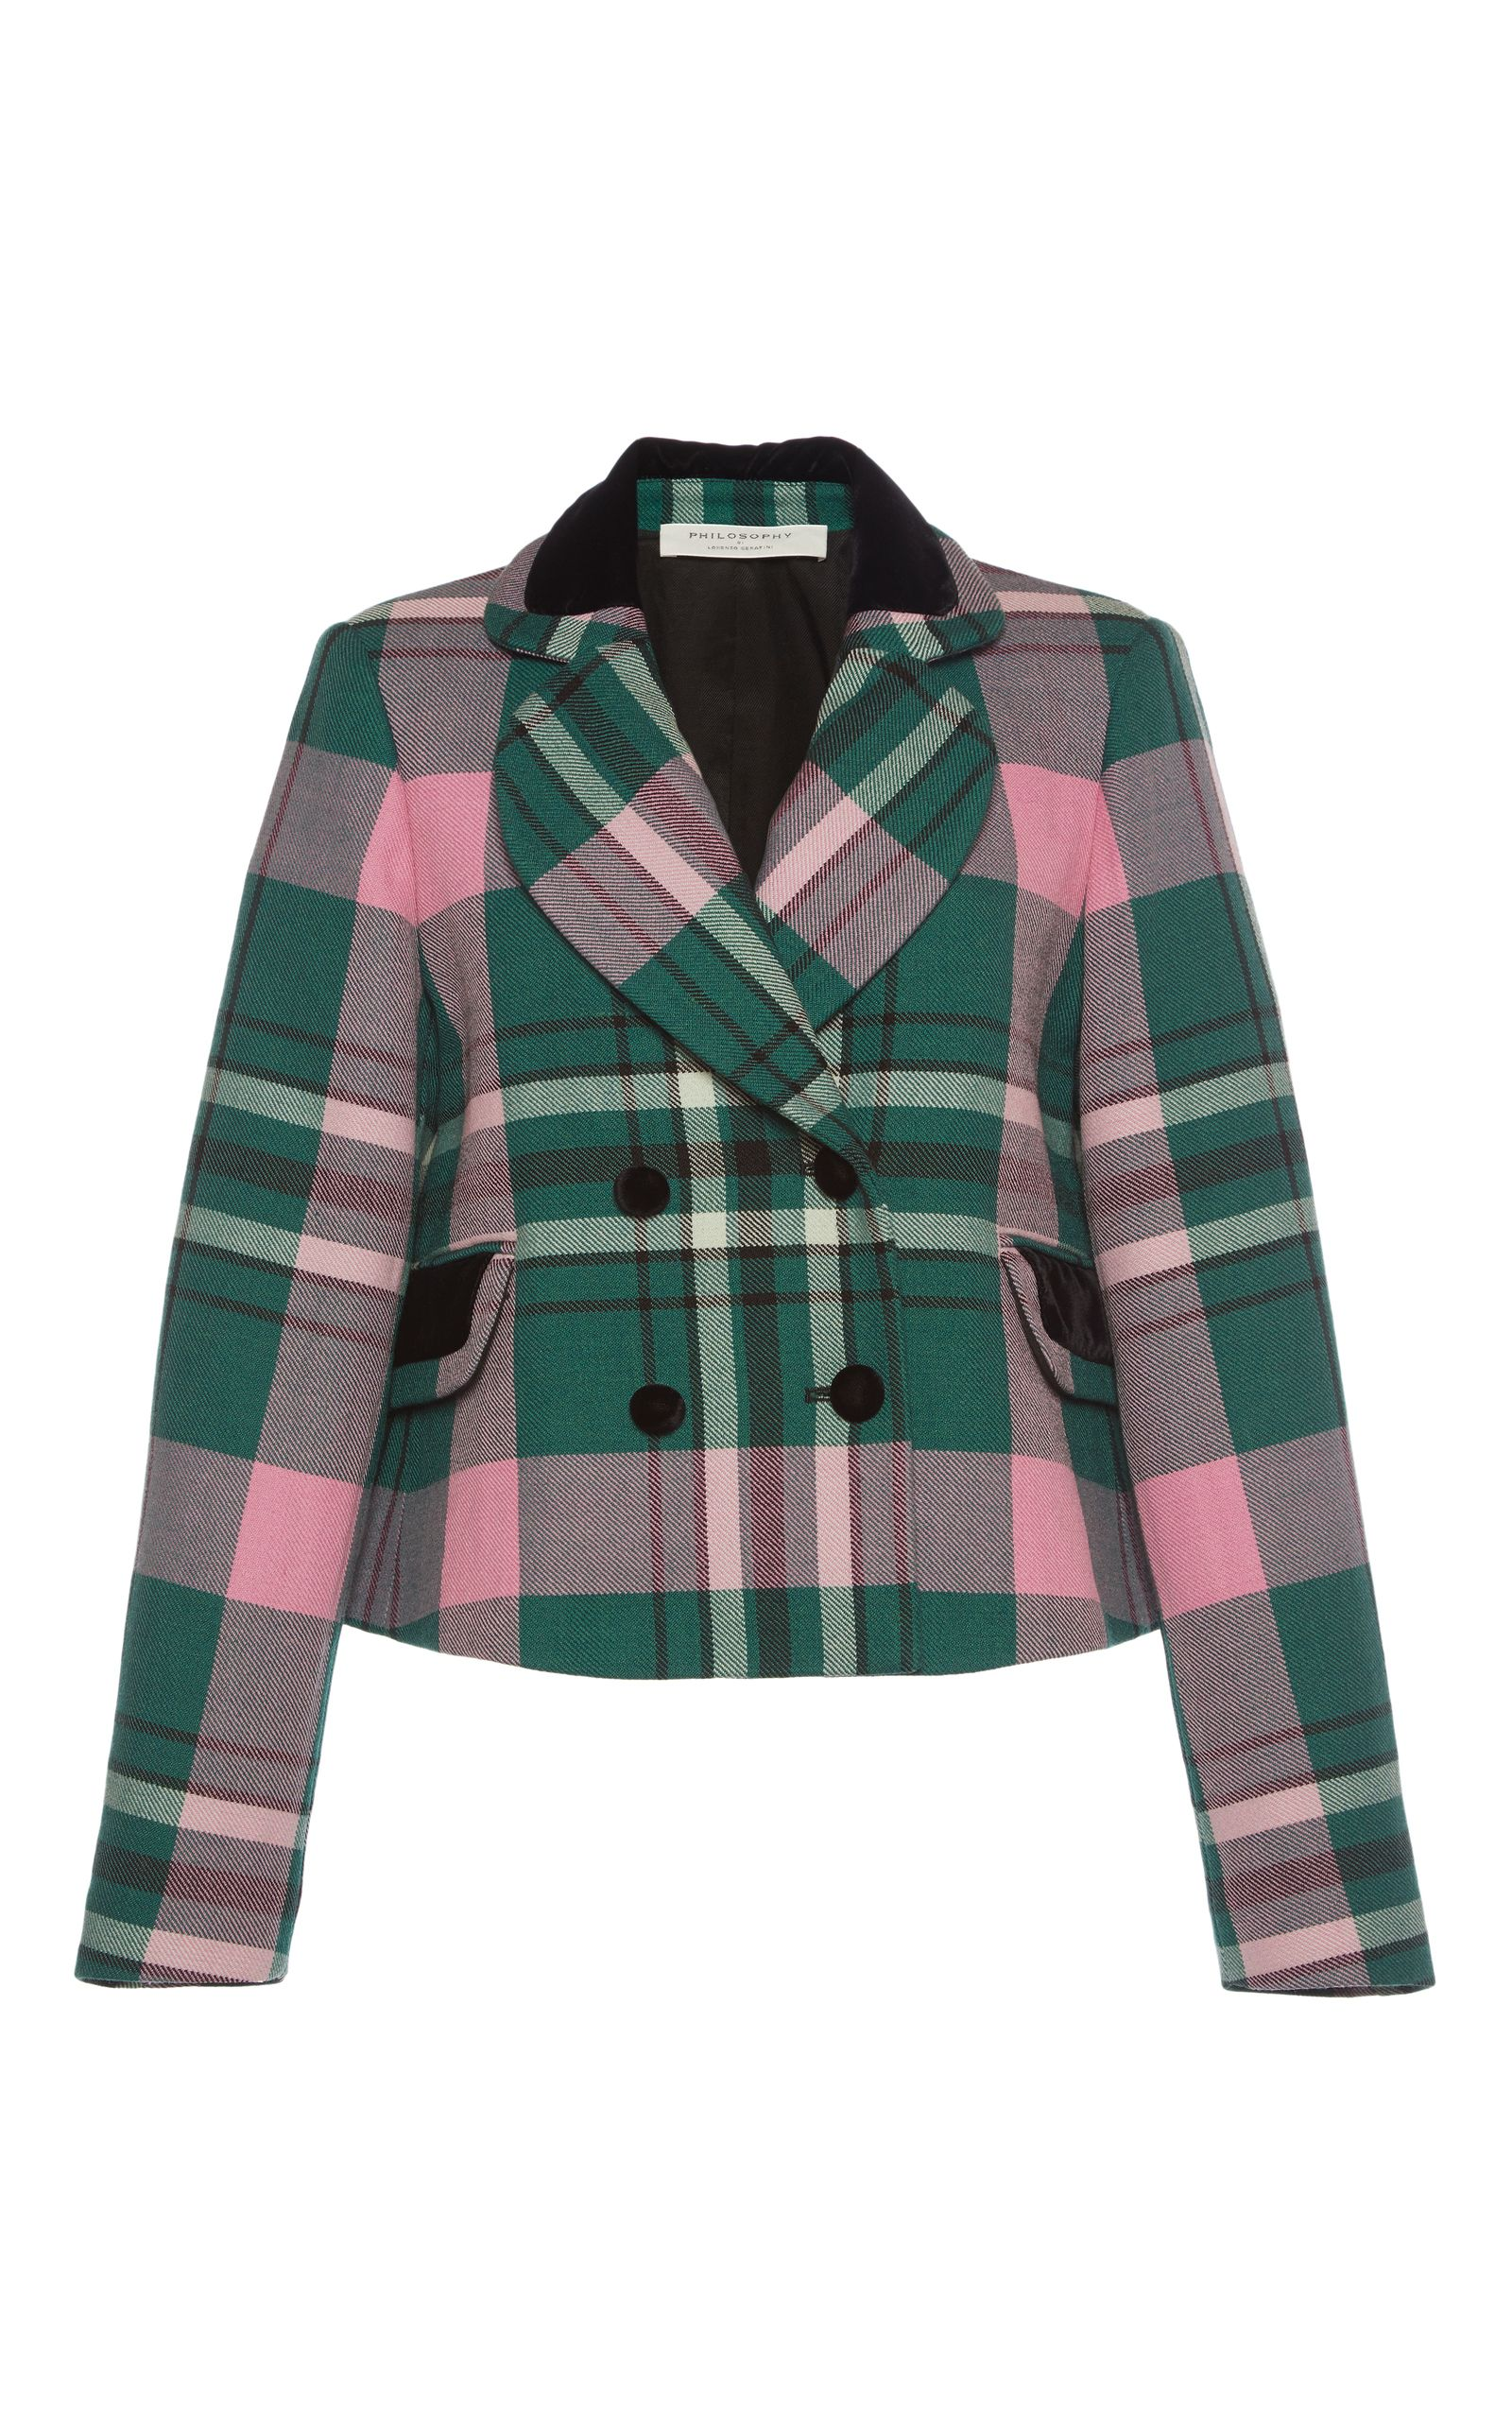 Double Breasted Cropped Plaid Jacket by PHILOSOPHY DI LORENZO SERAFINI for Preorder on Moda Operandi